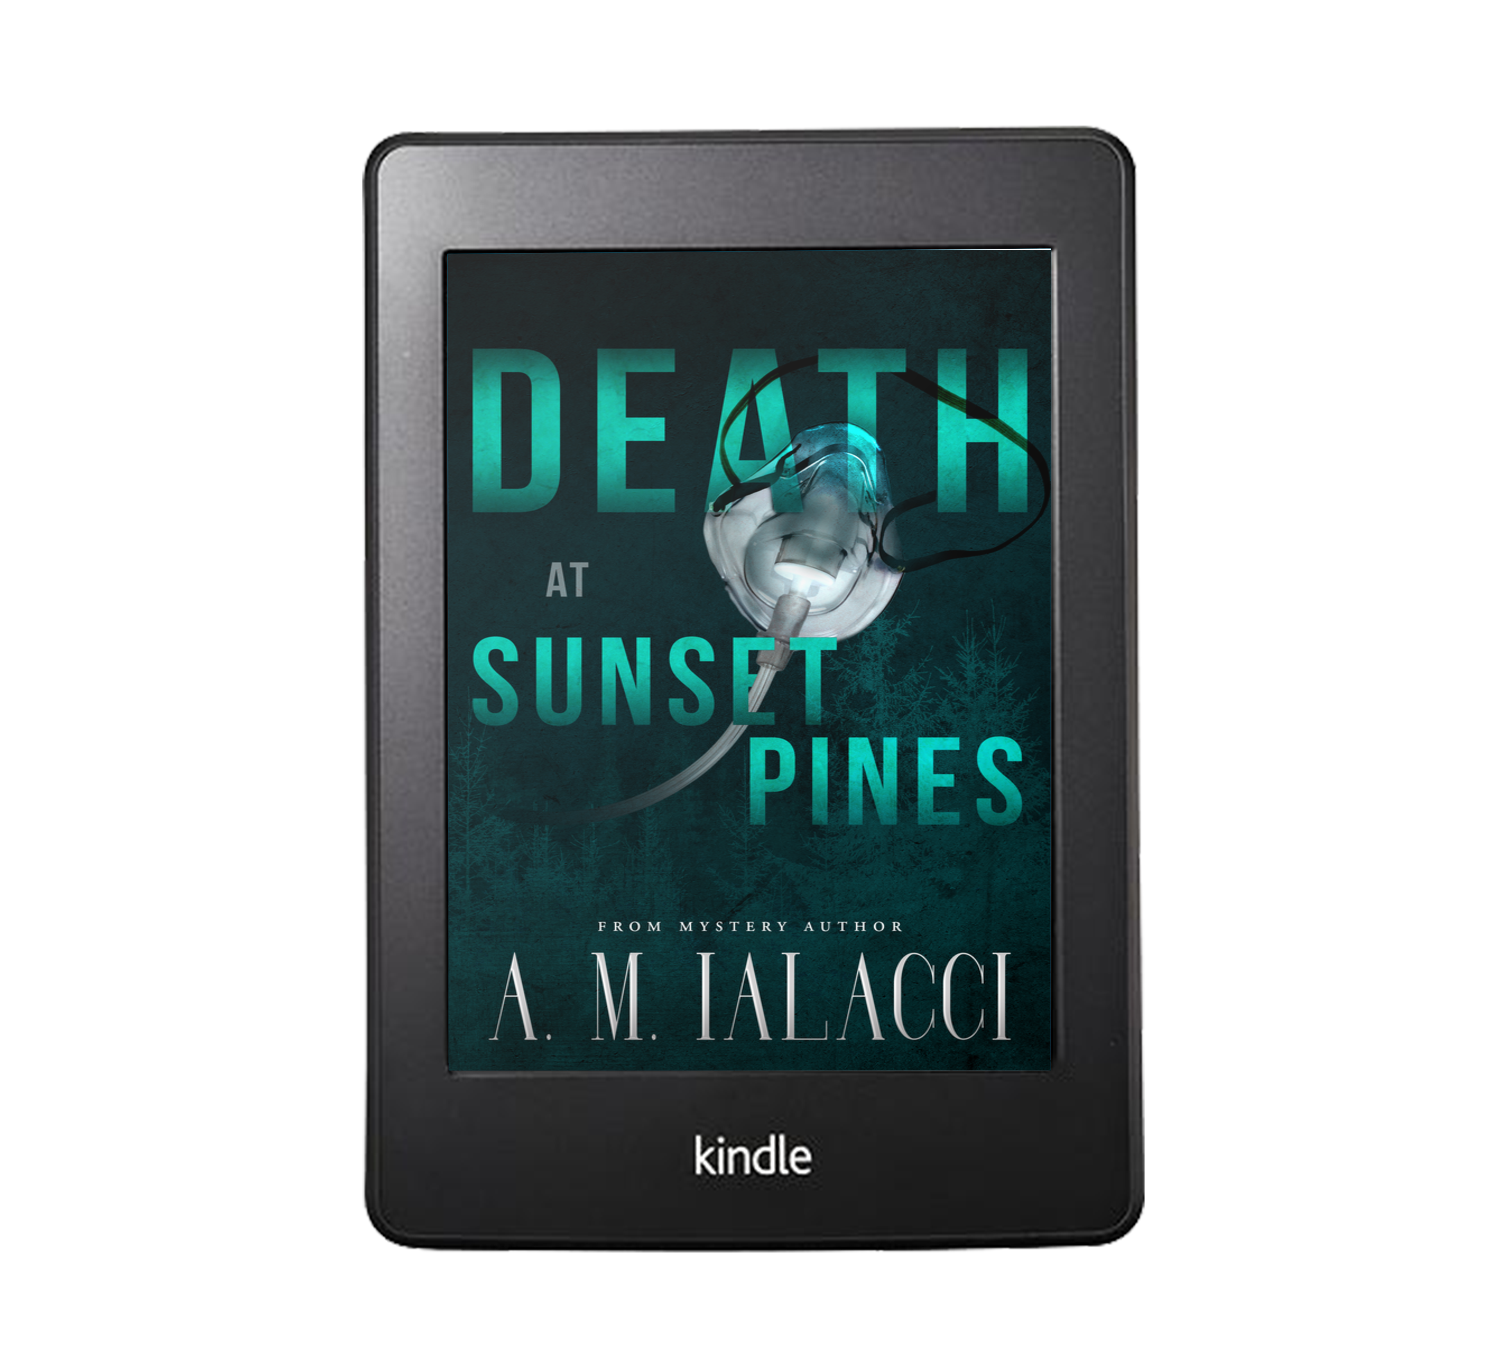 death at sunset pines - Olivia Torres is bored to tears living with her grandmother as a teen full-timer in an RV park. The local's gossip is her only form of entertainment until she discovers her neighbor dead in a closet at the park potluck. Now, Olivia is determined to use what she knows to figure out what happened. But which adults can she trust? And will they listen to a kid when death is on the line?NEWSLETTER EXCLUSIVE — FREE E-BOOK!